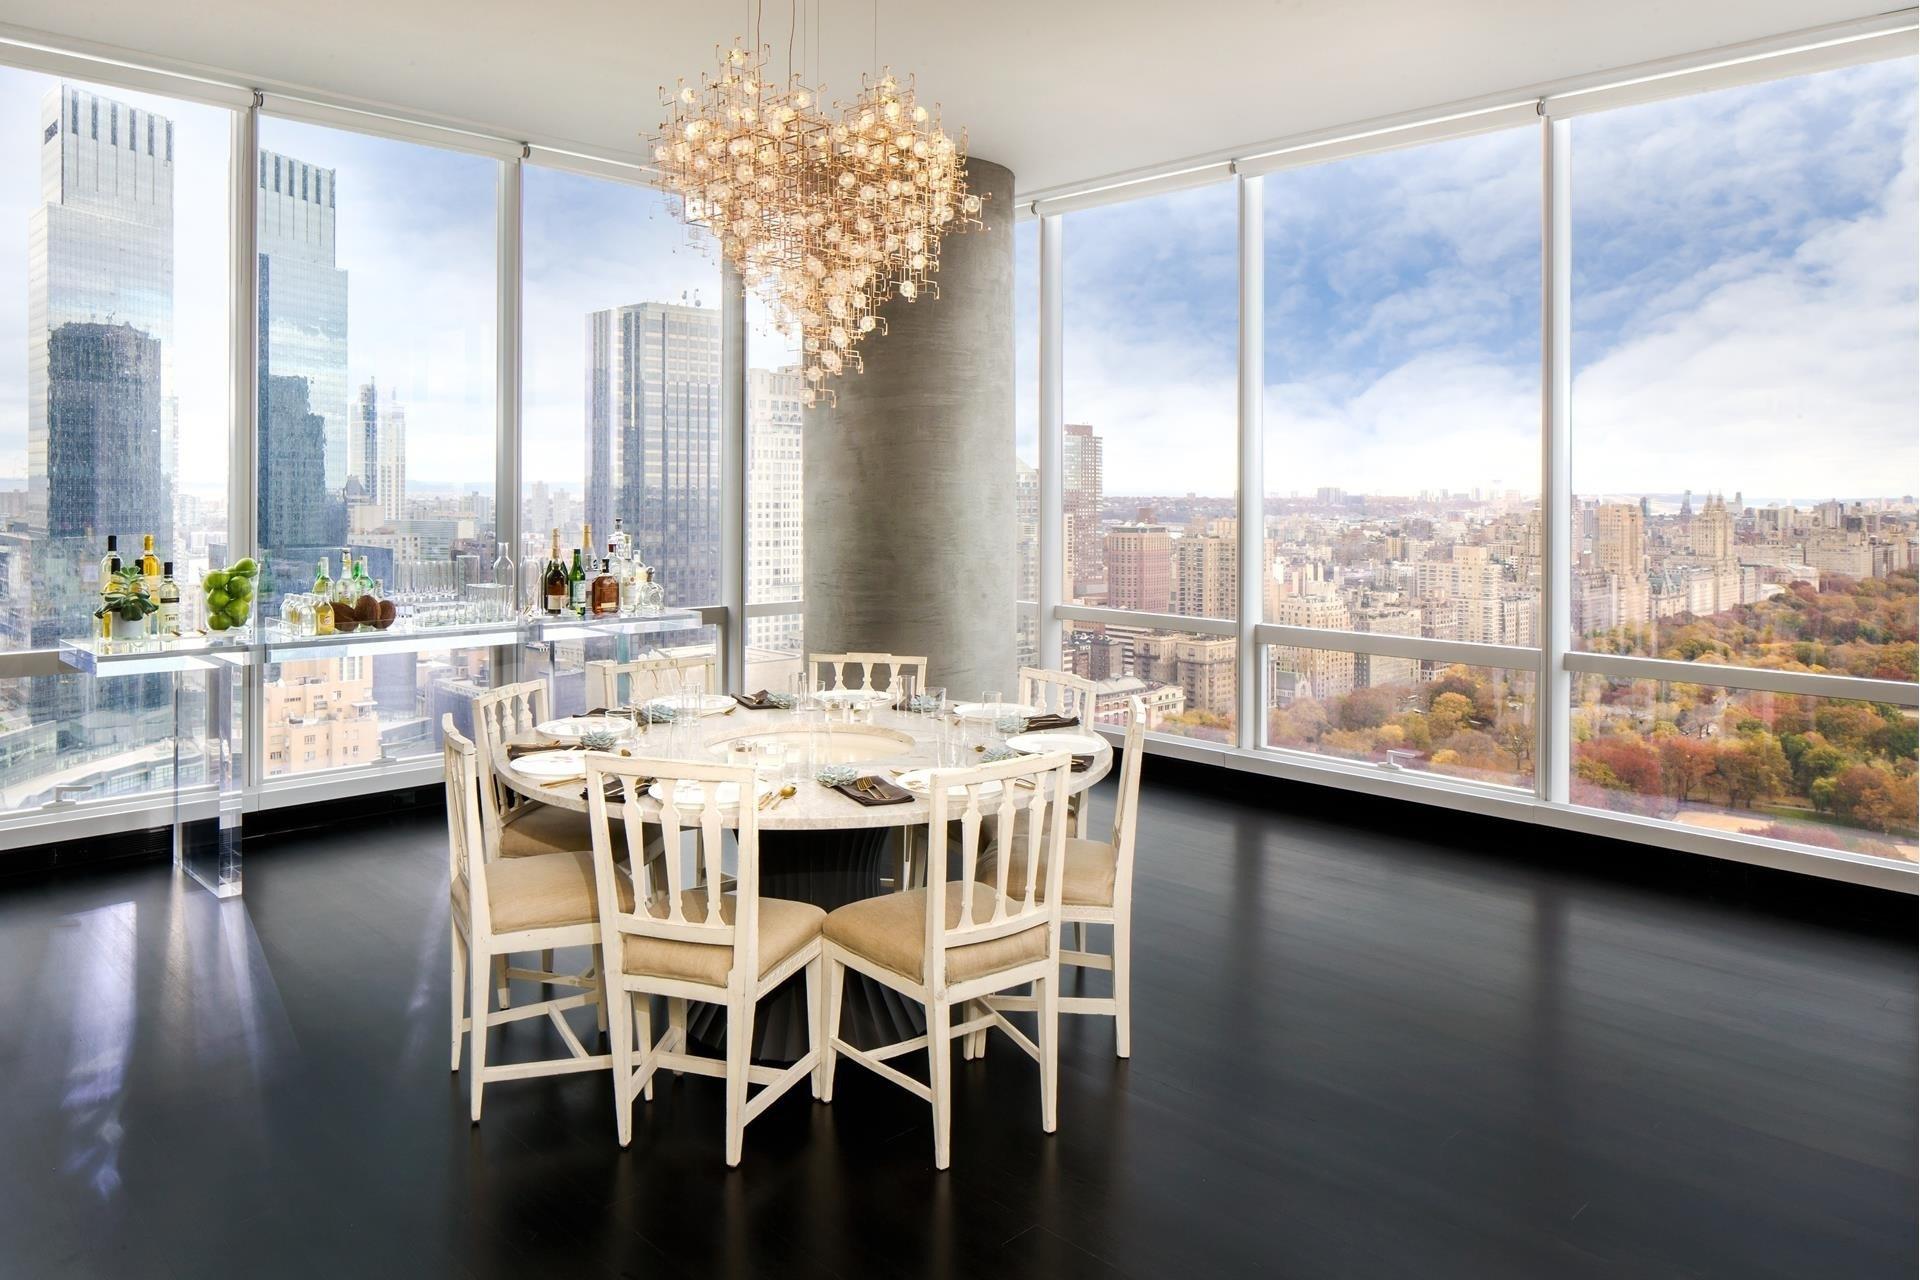 2. Condominiums for Sale at One57, 157 W 57TH ST , 41A Midtown West, New York, NY 10019